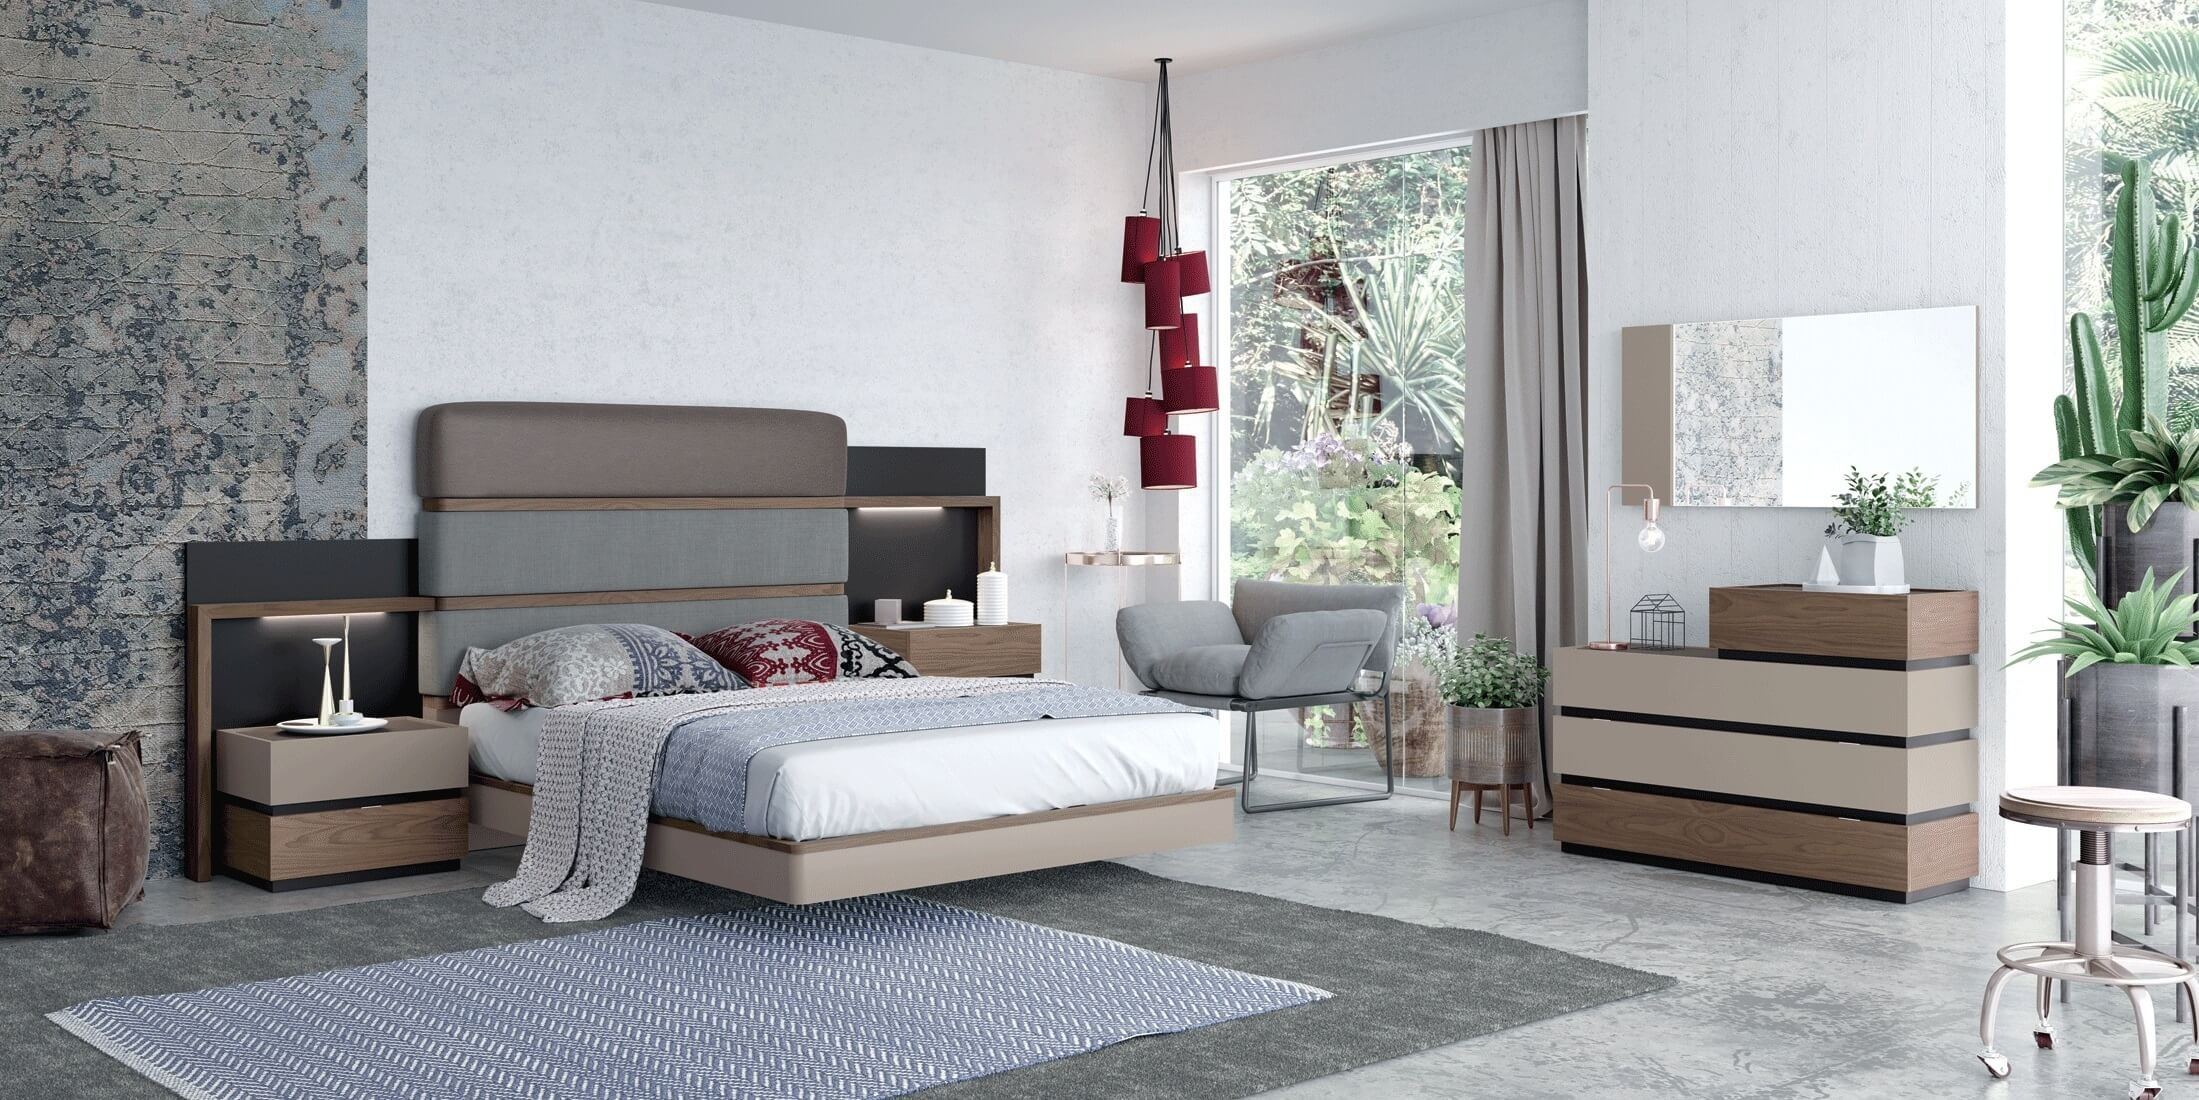 Leo Eco Leather Fabric Platform Bedroom Set Brown Grey By Esf Furniture Sohomod Com,Colours That Go With Purple In A Bedroom